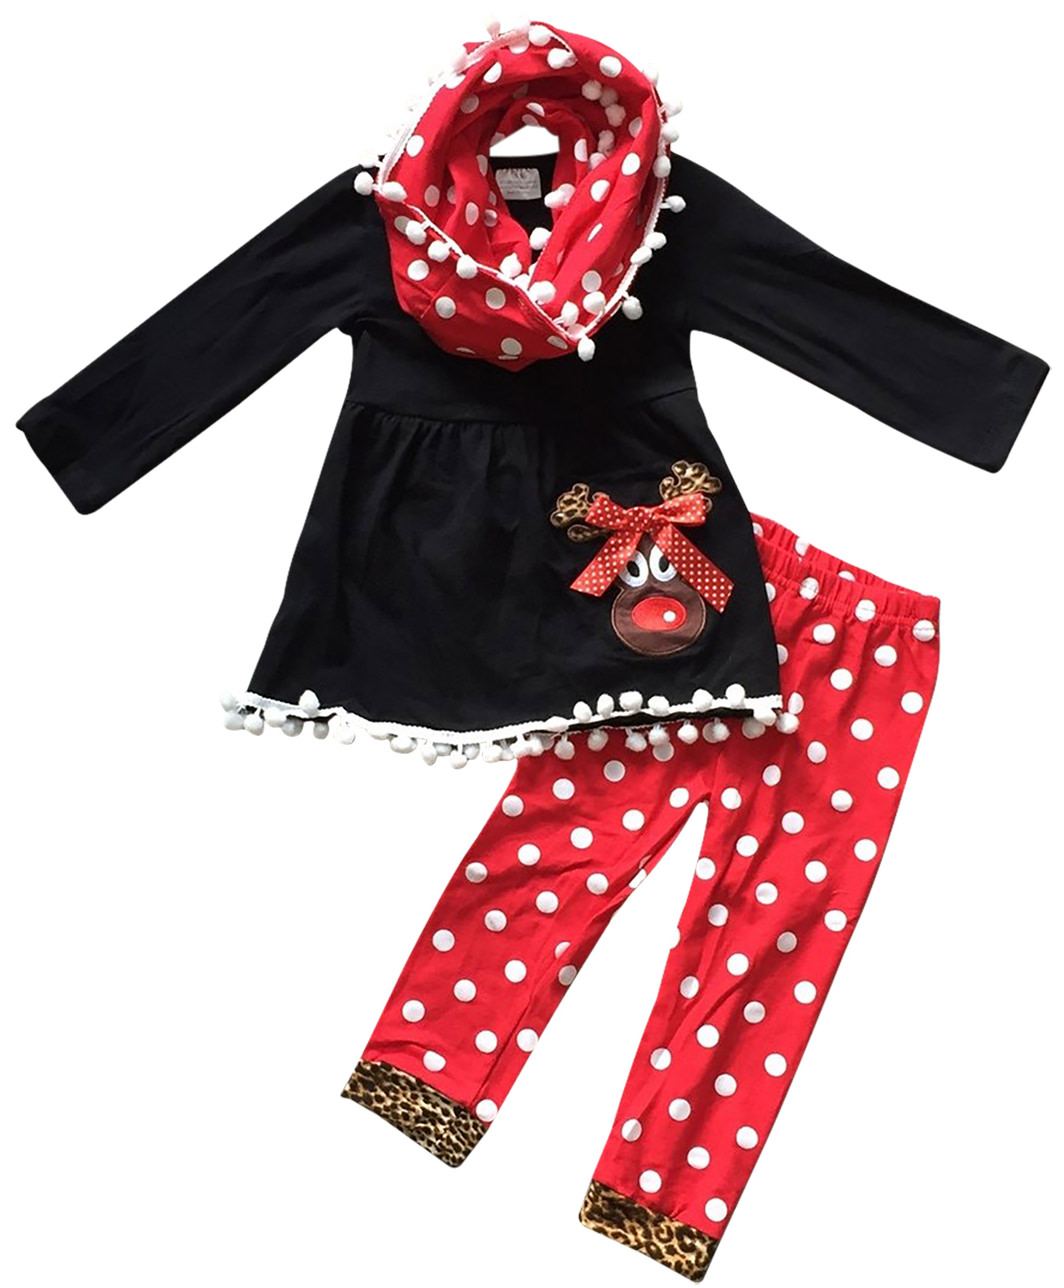 Toddler Girls 3 Pieces Set Reindeer Christmas Polka Outfit Top Scarf Pant Set Black Red 2T XS (P500244P)